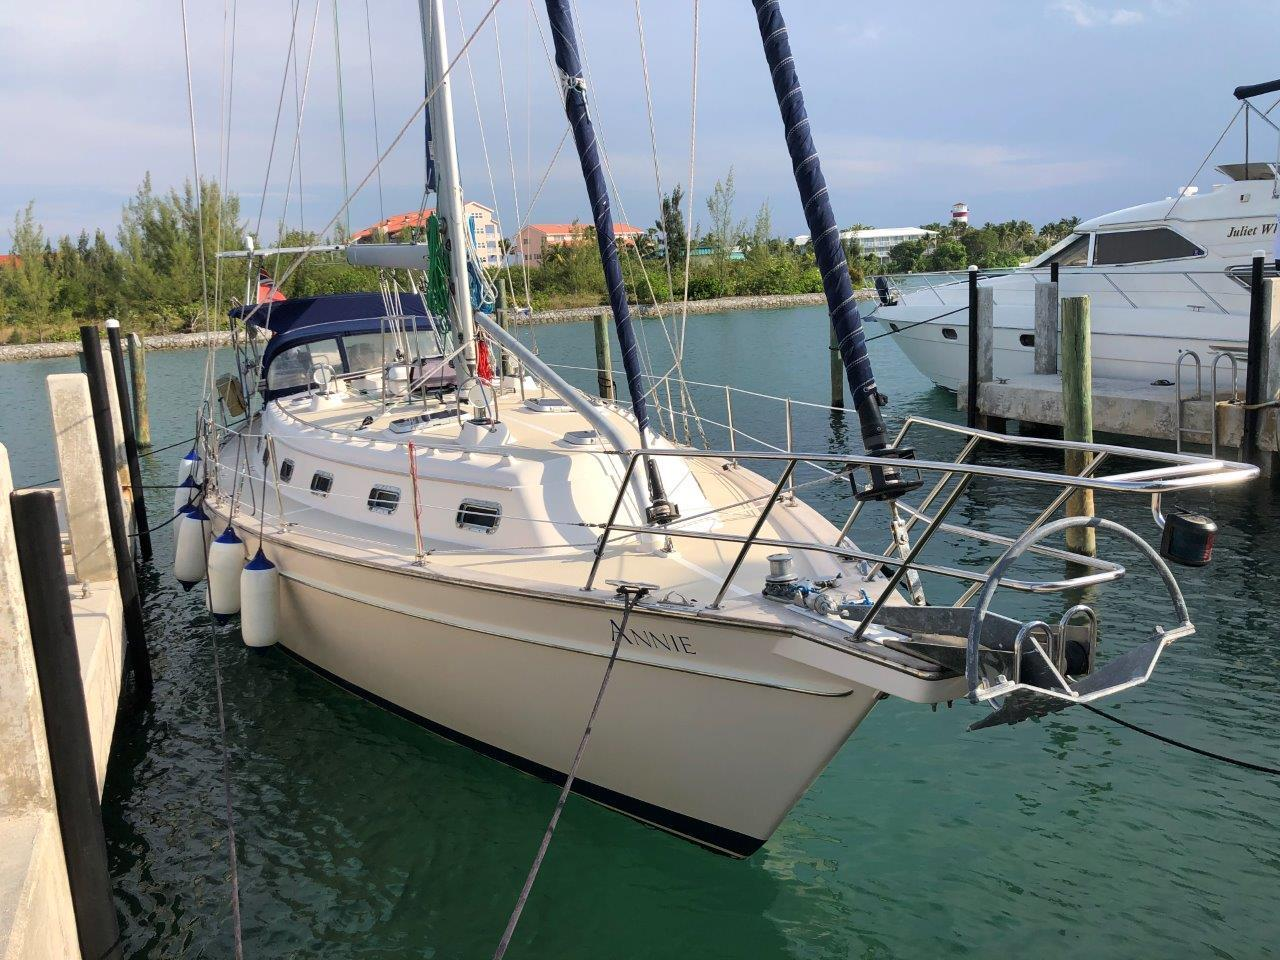 Cutter rig with s self-tending staysail